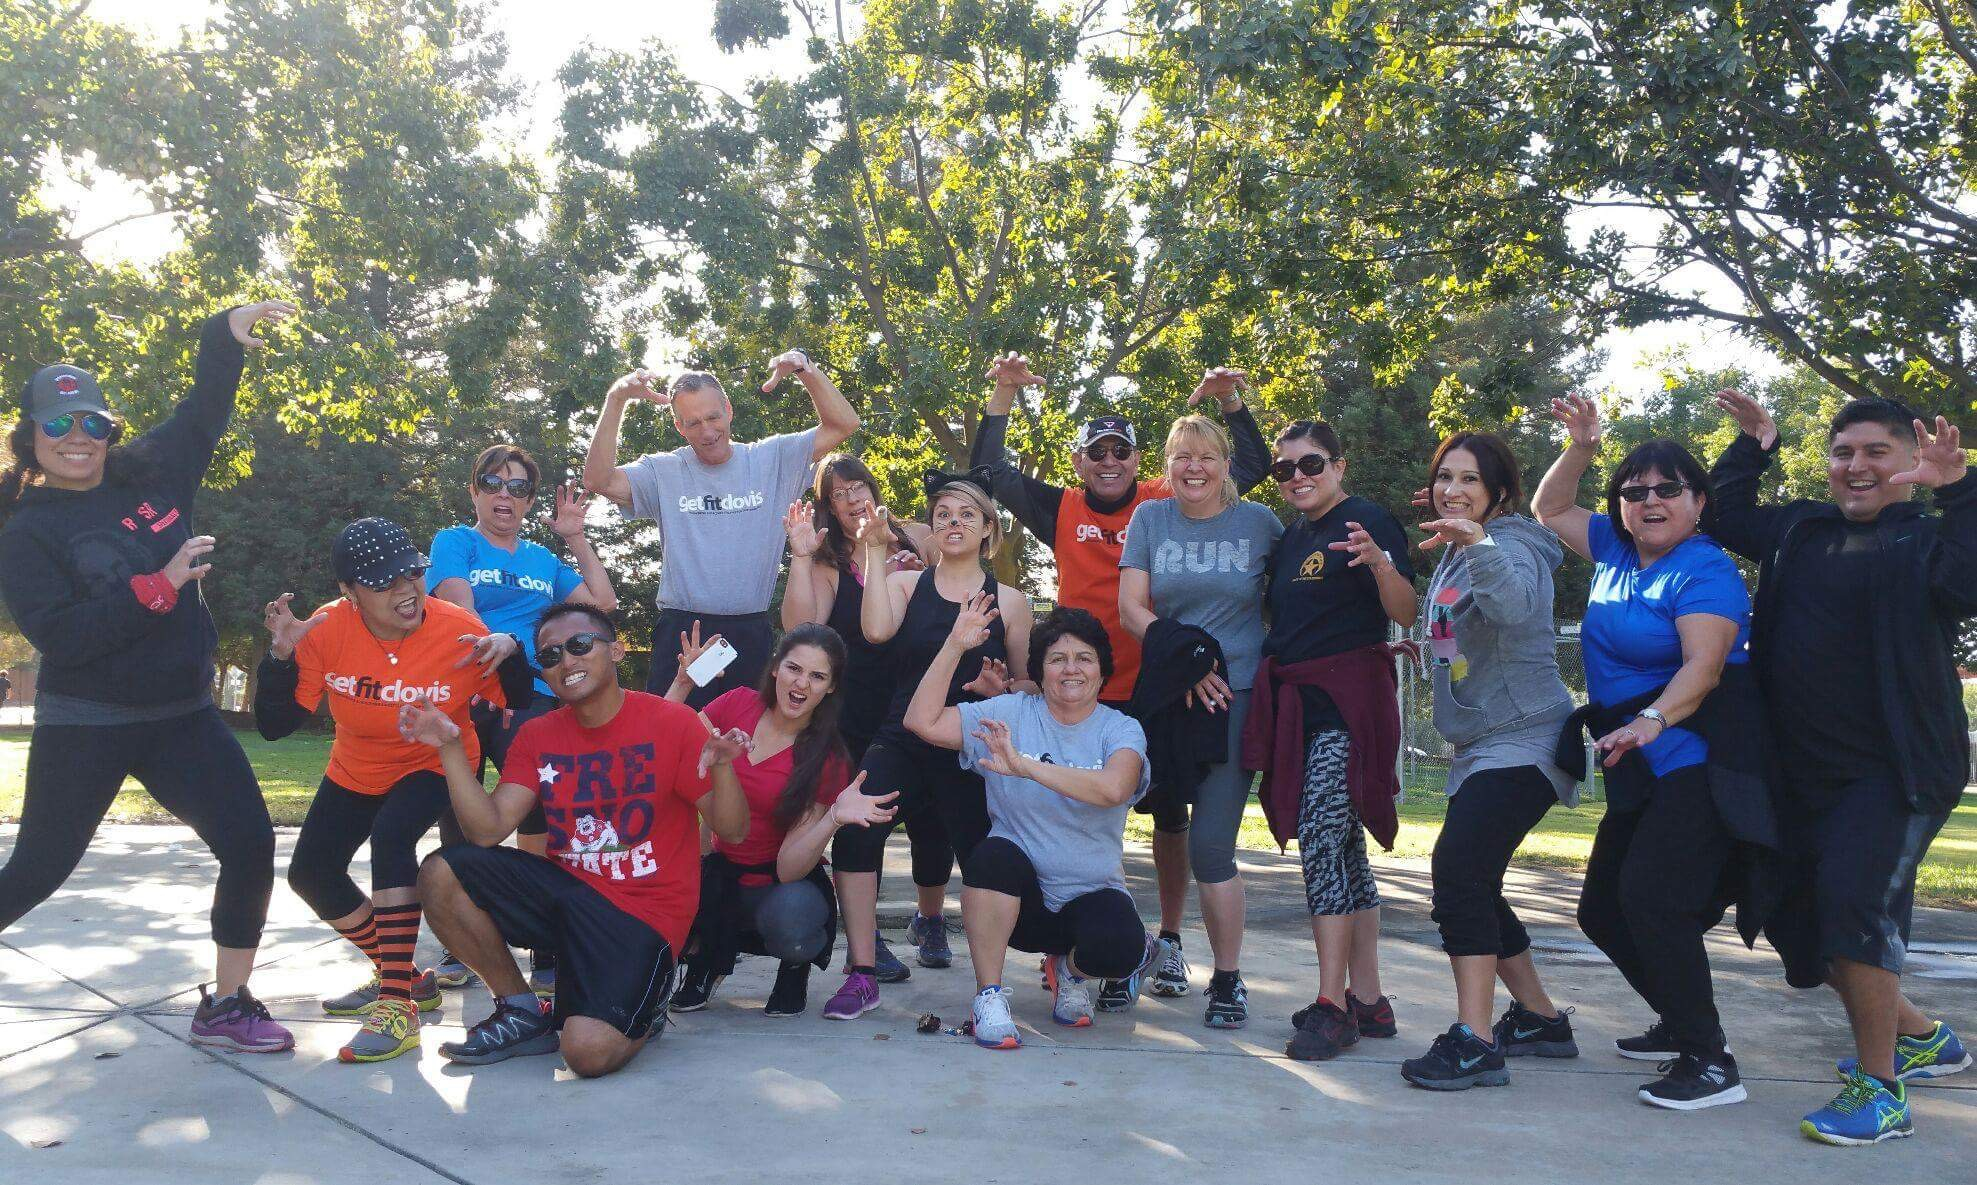 Get Fit Clovis' team posing with A.J. Lacuesta (red Fresno State shirt) after their 'Thriller' dance routine. [Photo by Anna Moore]